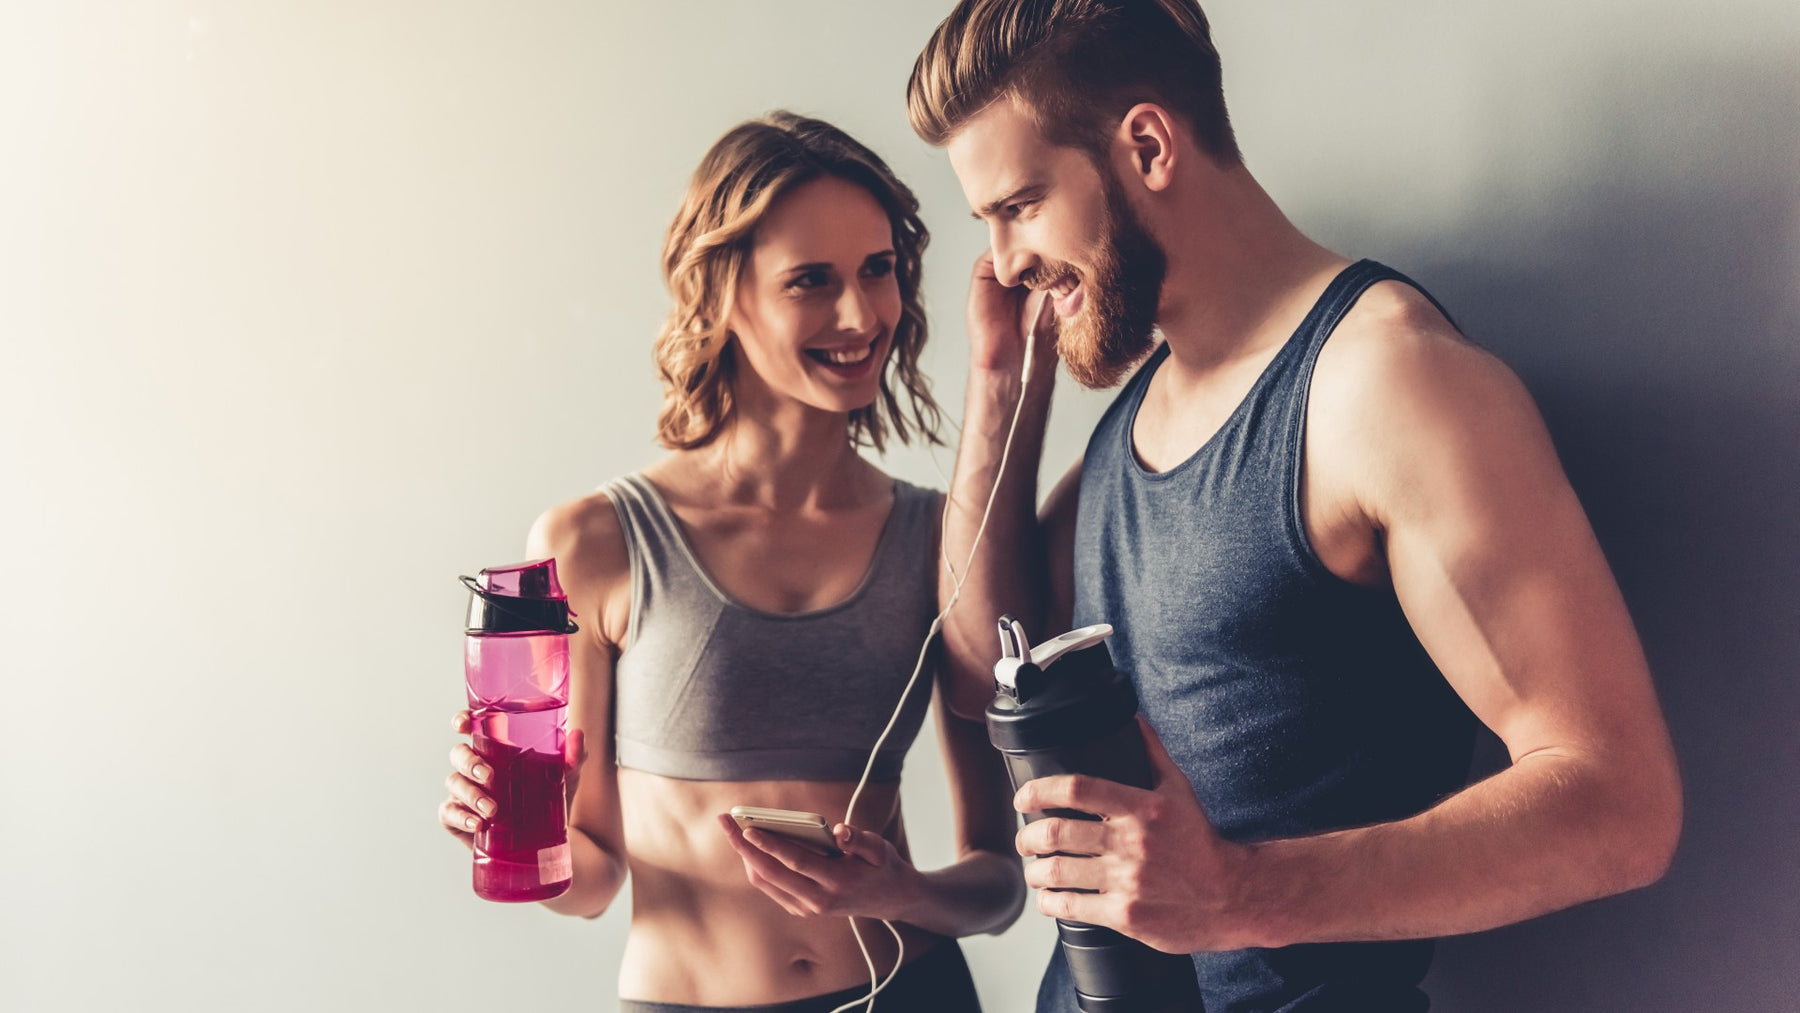 Gymder - The Spornosexual Workout Buddy App for Lifters